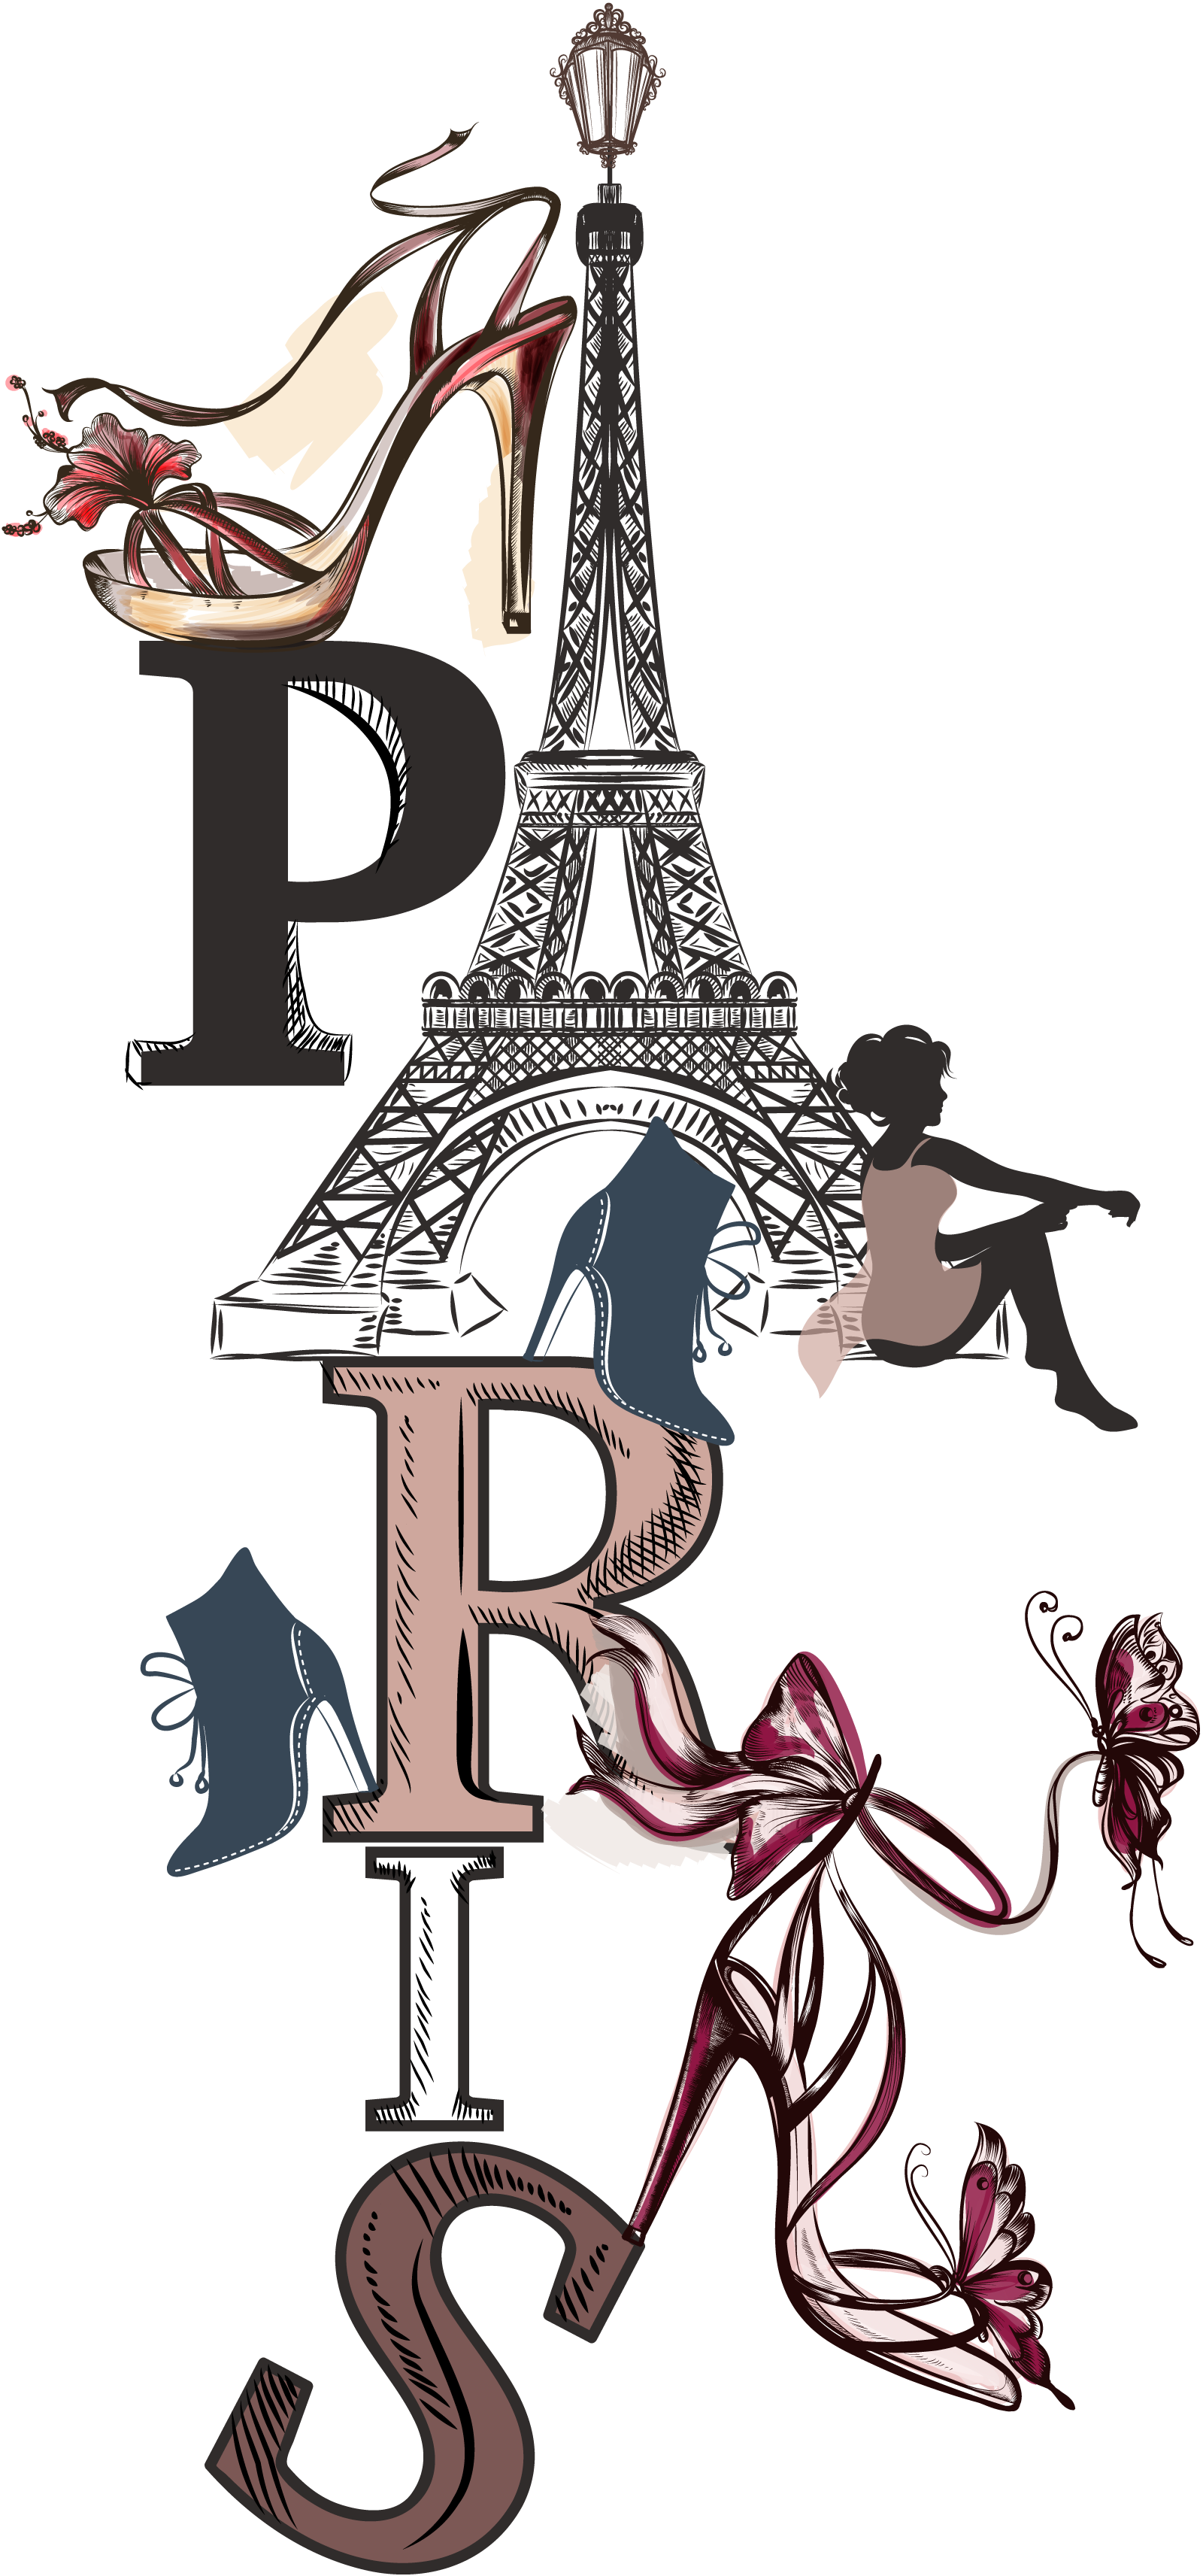 Paris clipart dog paris. For free download and